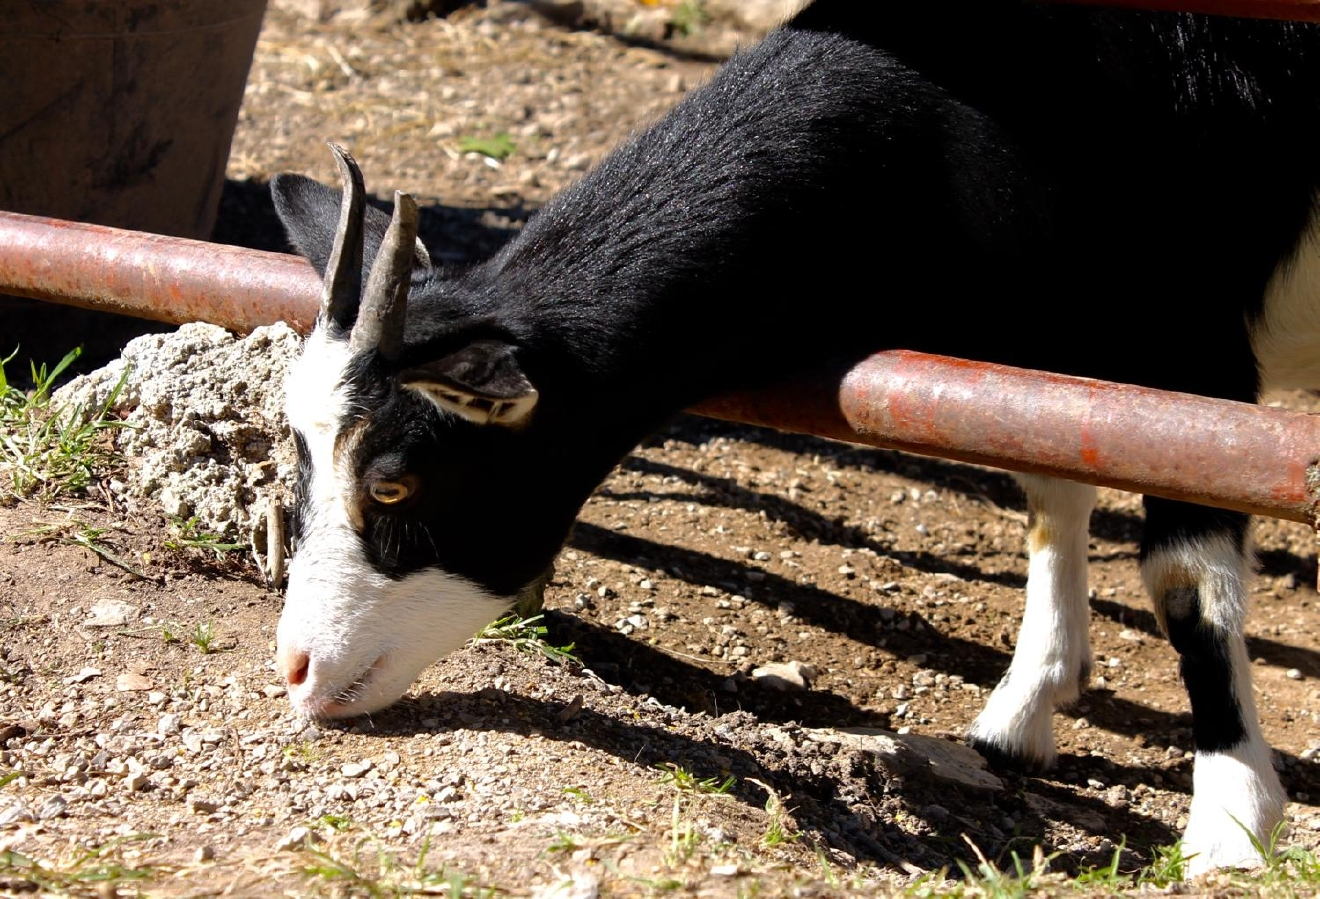 The origin of the Fainting Goat's name comes from the fact that they freeze their muscles for roughly 3 seconds when they feel panic (which is painless), causing it to fall over. This is caused by a hereditary genetic disorder. Goats are also the oldest domesticated species. / Image: Rose Brewington